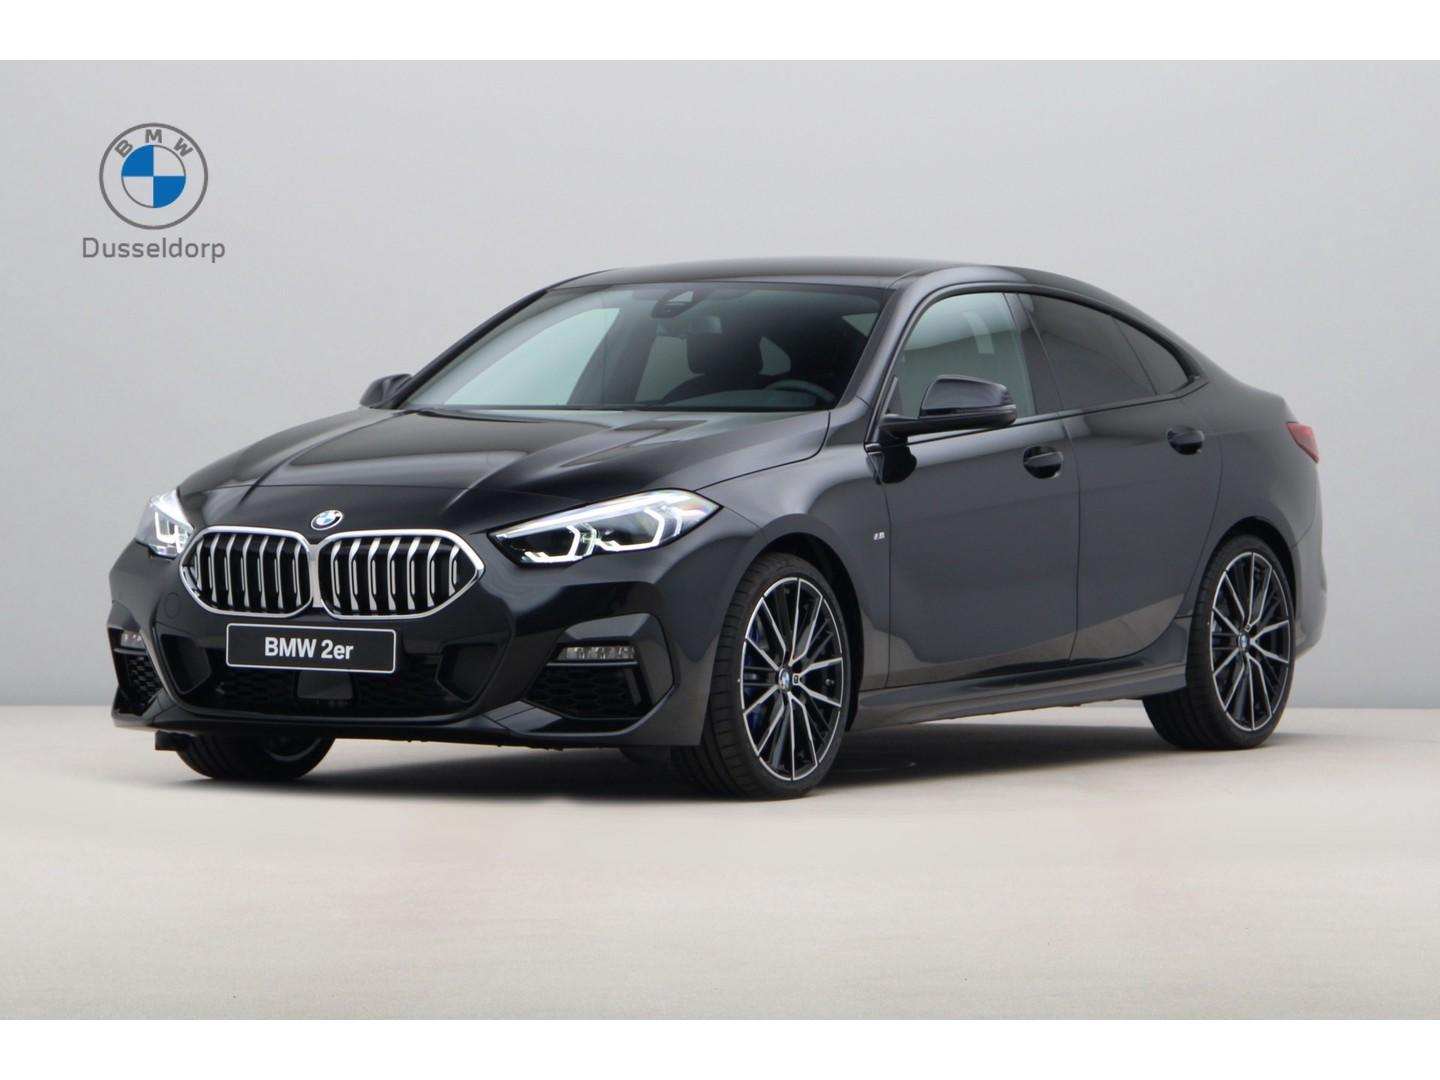 Bmw 2 serie Gran coupé 218i high executive m-sport